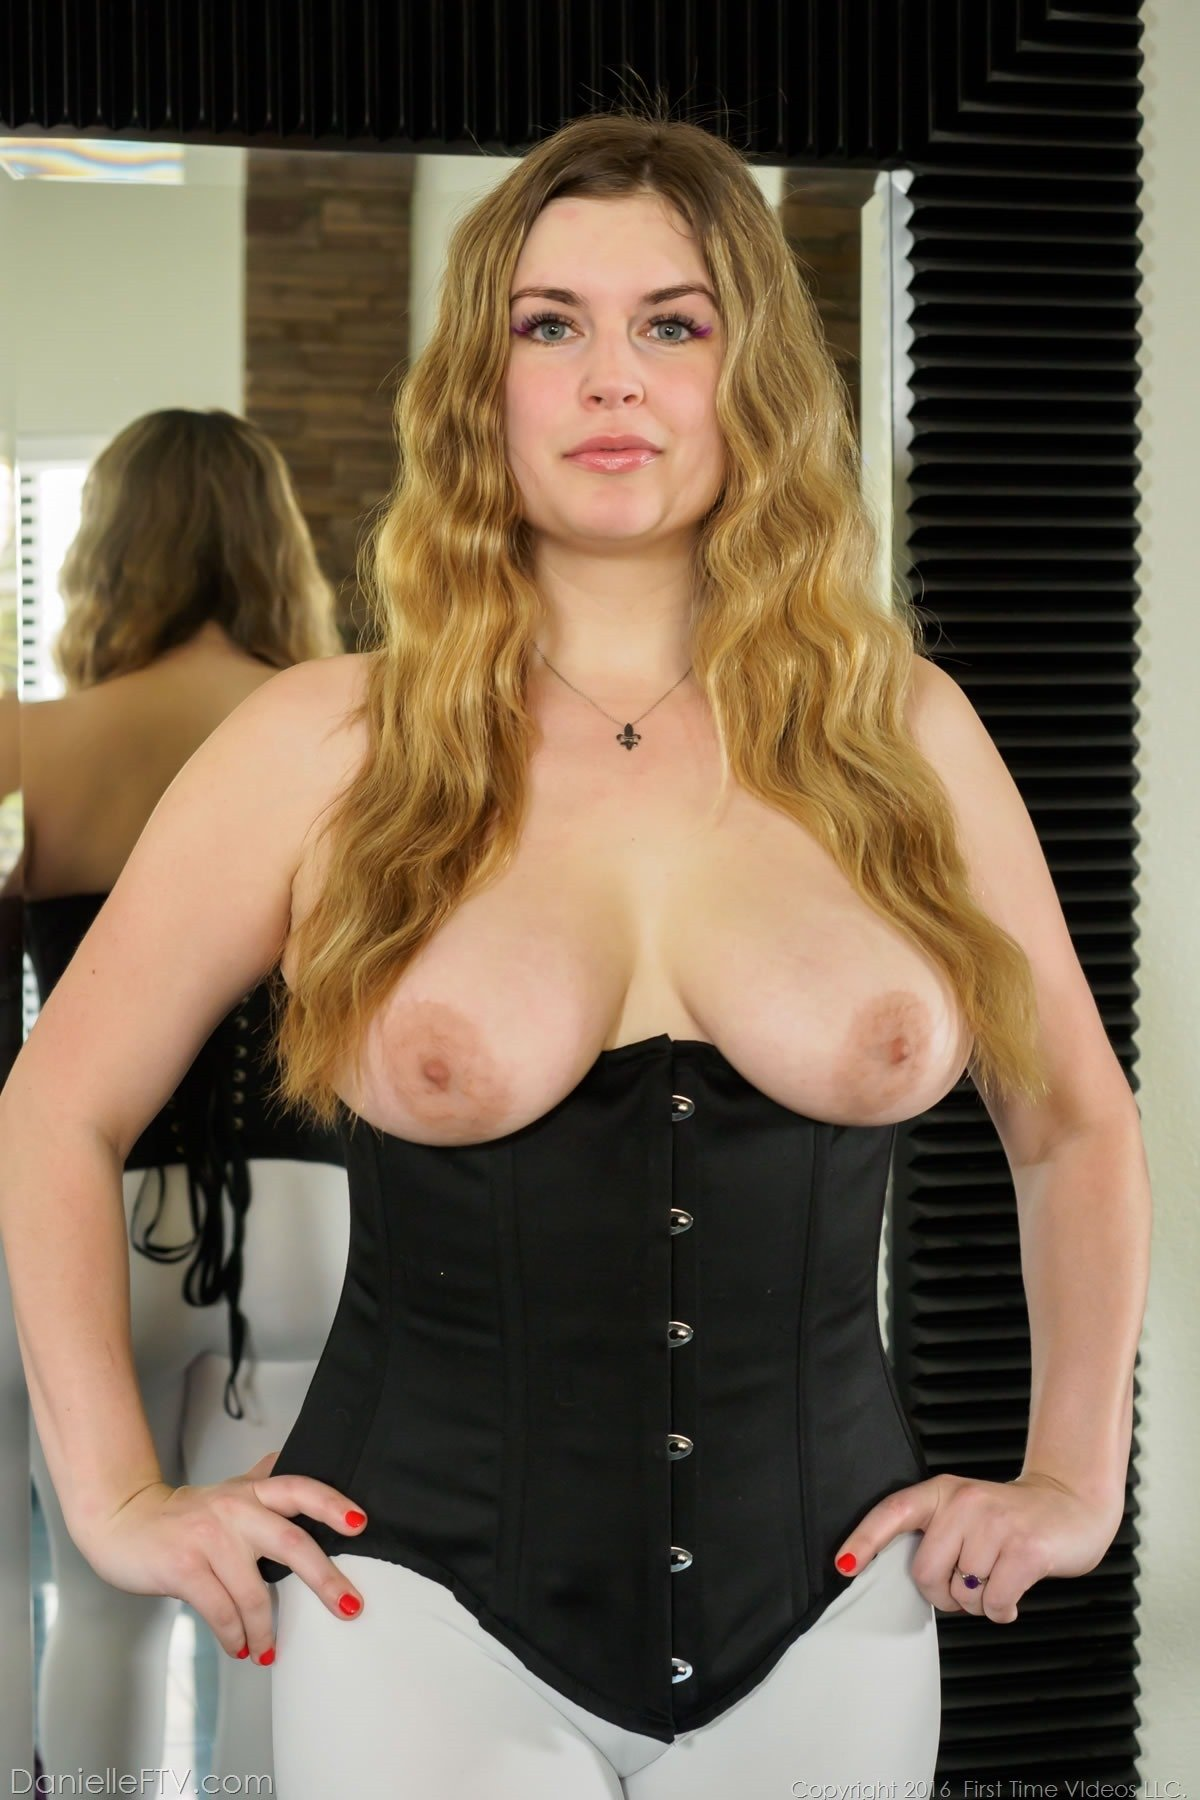 Louise porter naked pussy